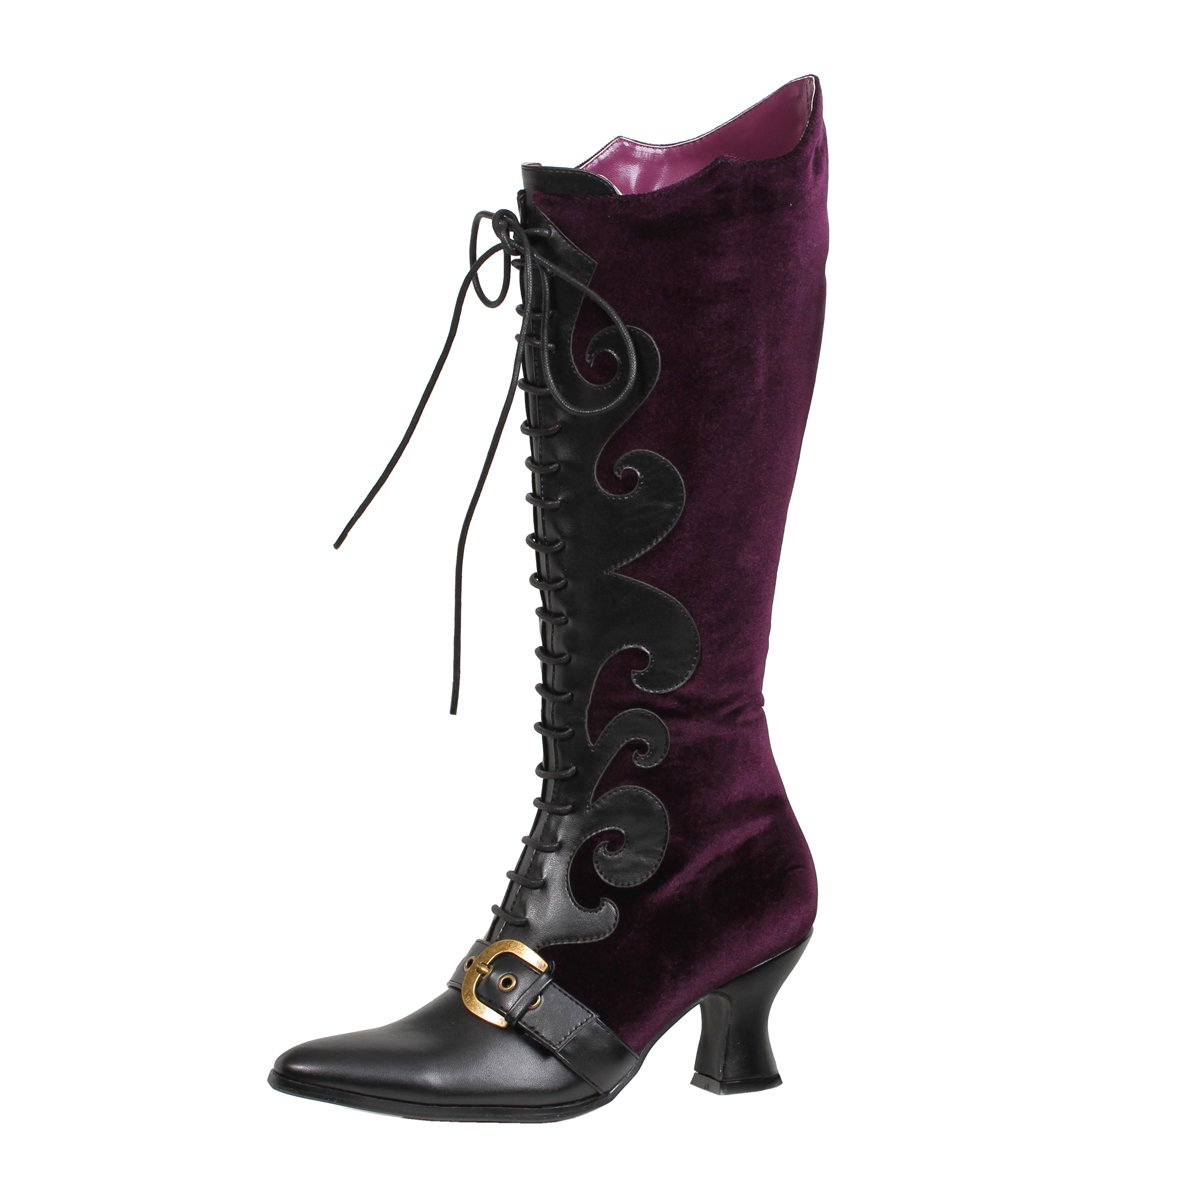 Women's Fancy Purple Knee-High Lace-Ups Victorian Boots - DeluxeAdultCostumes.com